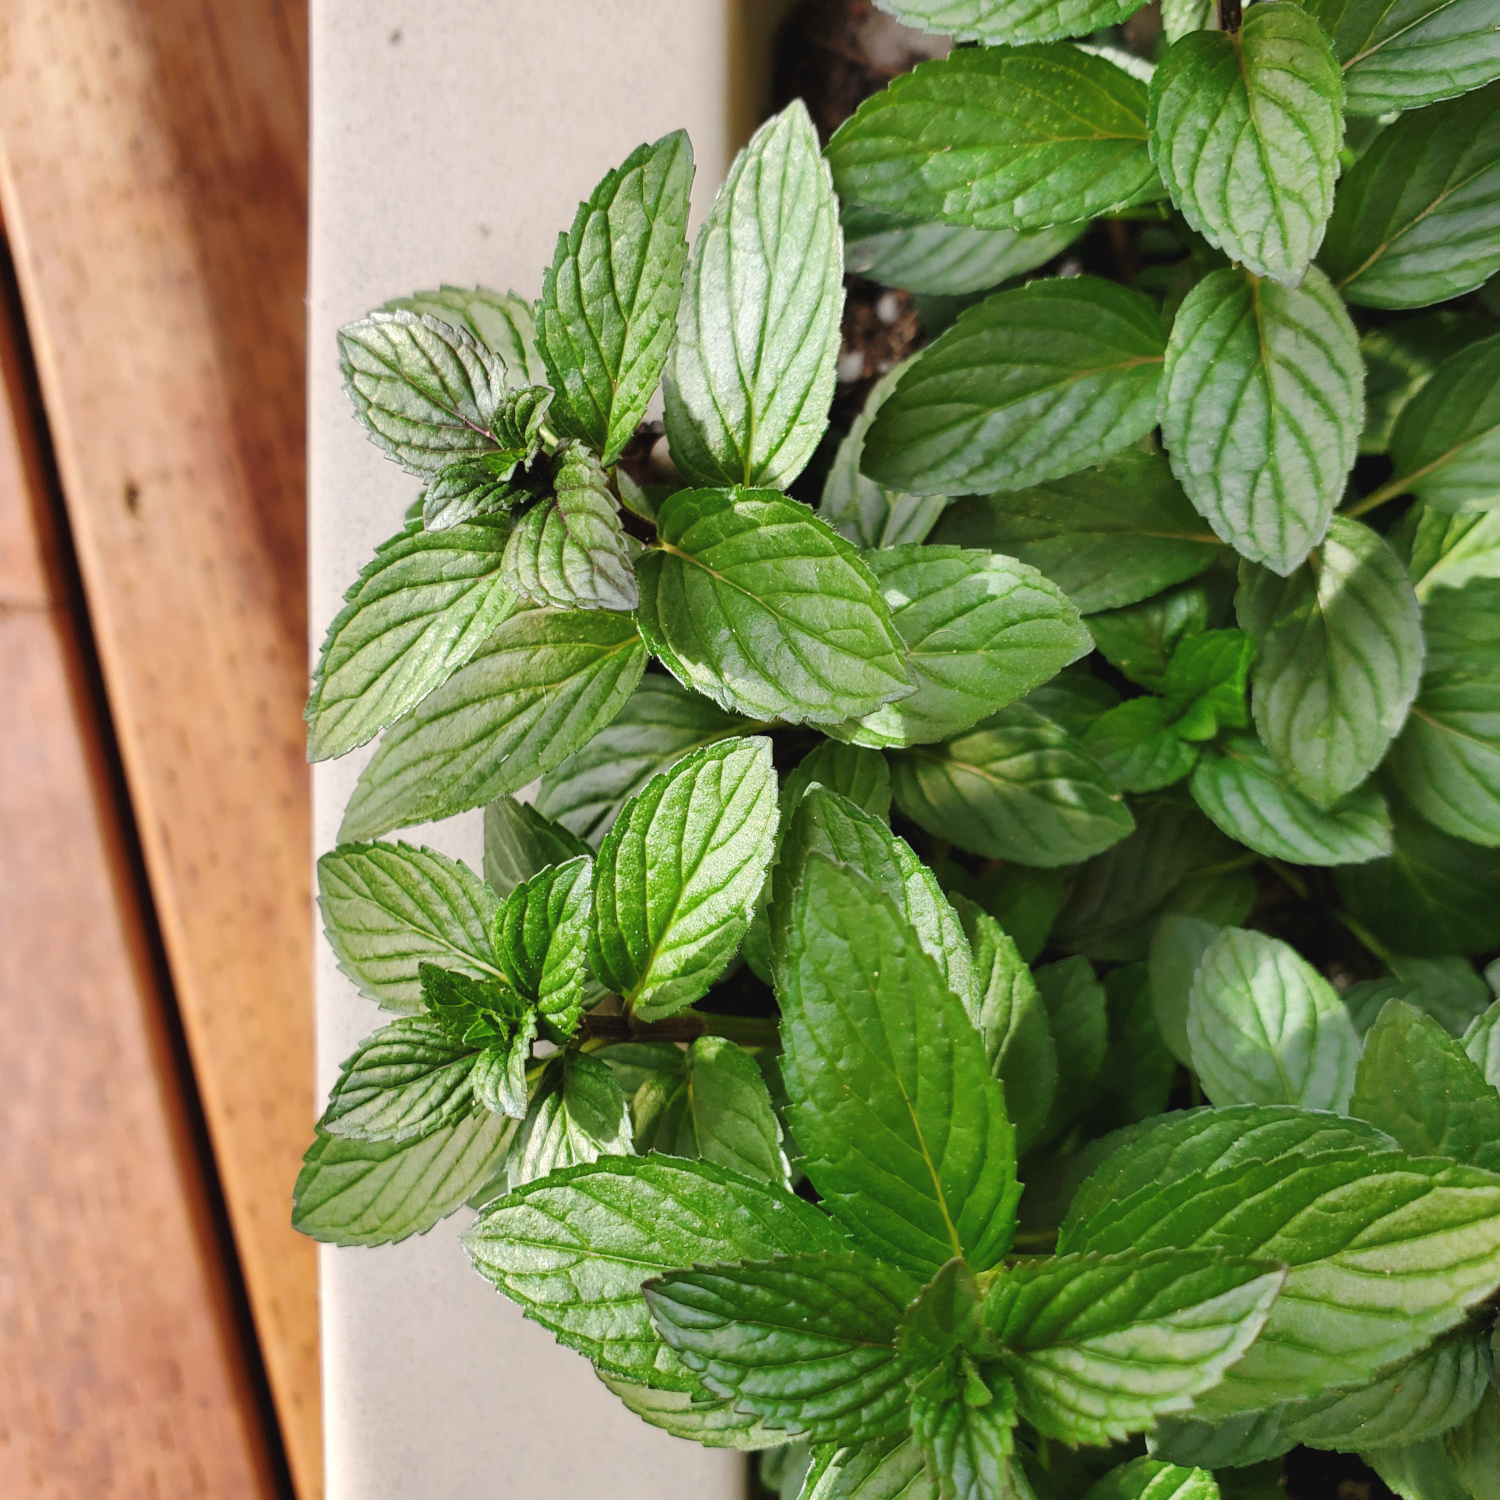 Every mint leaf looks absolutely perfect